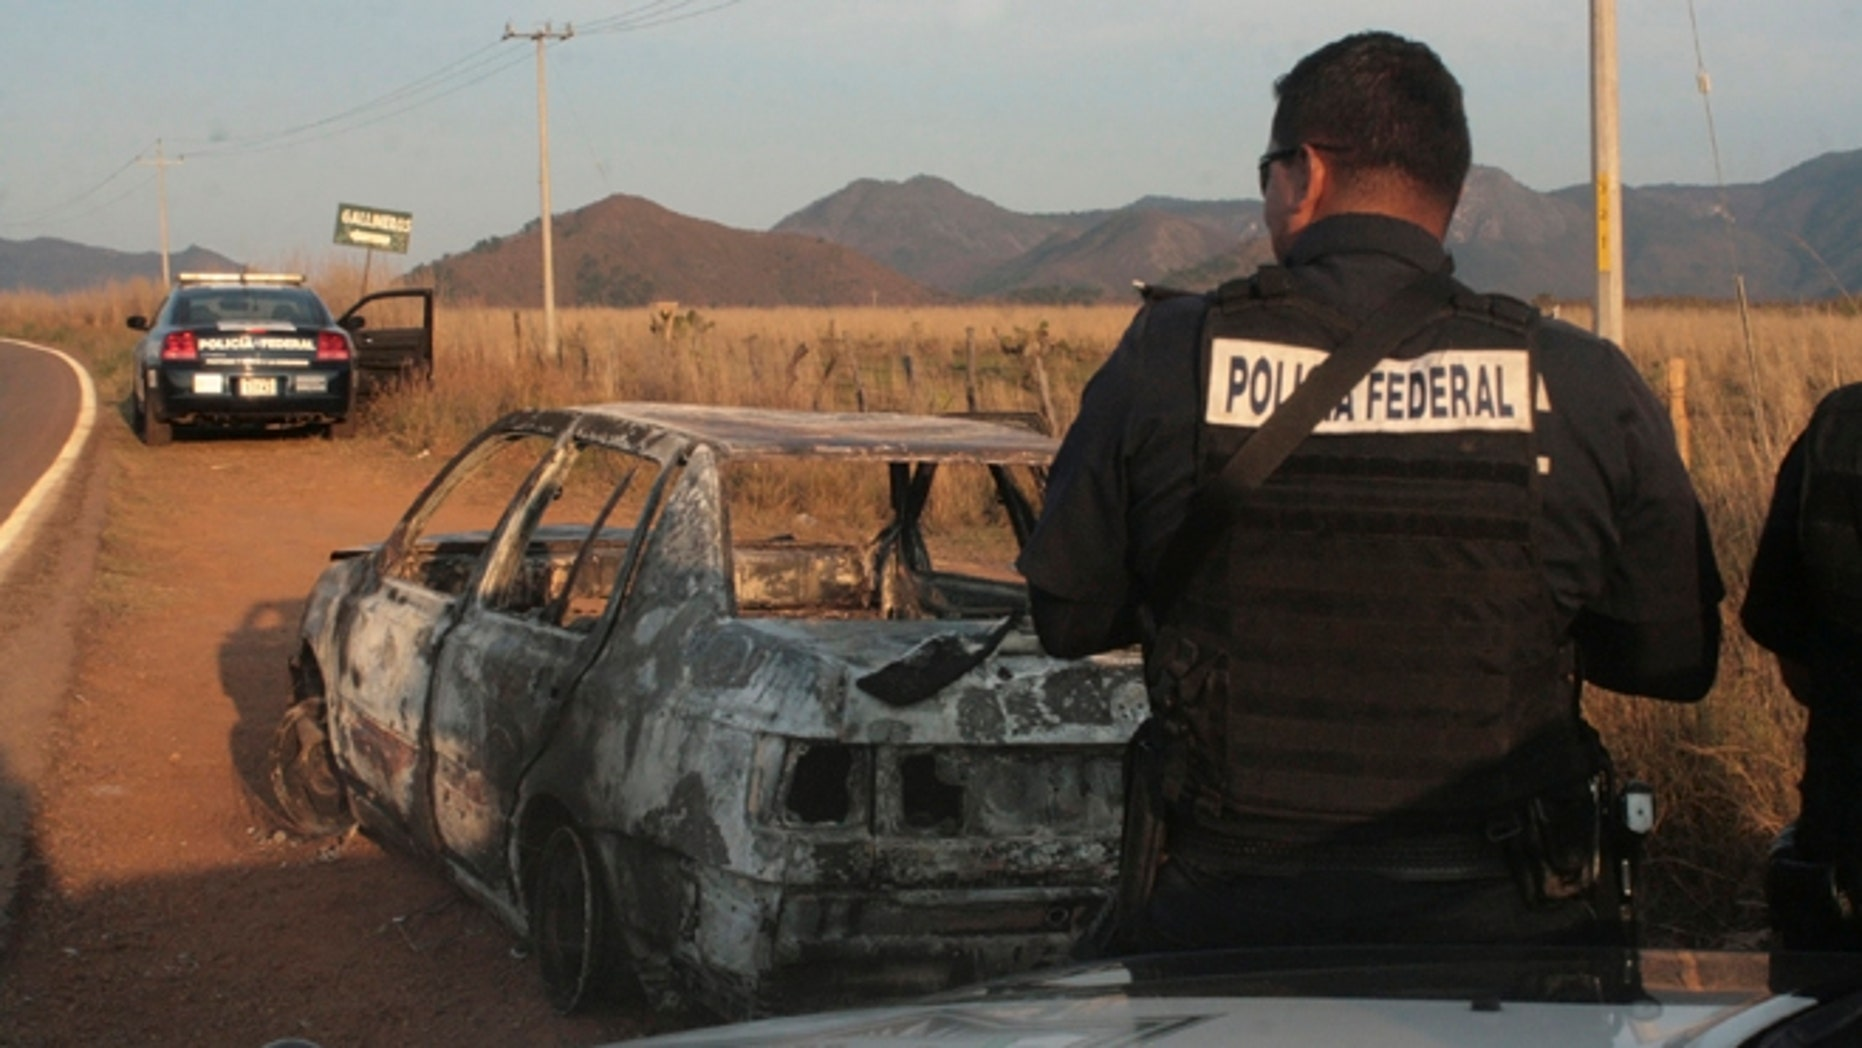 Federal police stand next to a bullet riddled and burned car after a criminal gang ambushed a police convoy near the town of Soyatlan, near Puerto Vallarta, Mexico, Monday, April 6, 2015. (AP Photo)